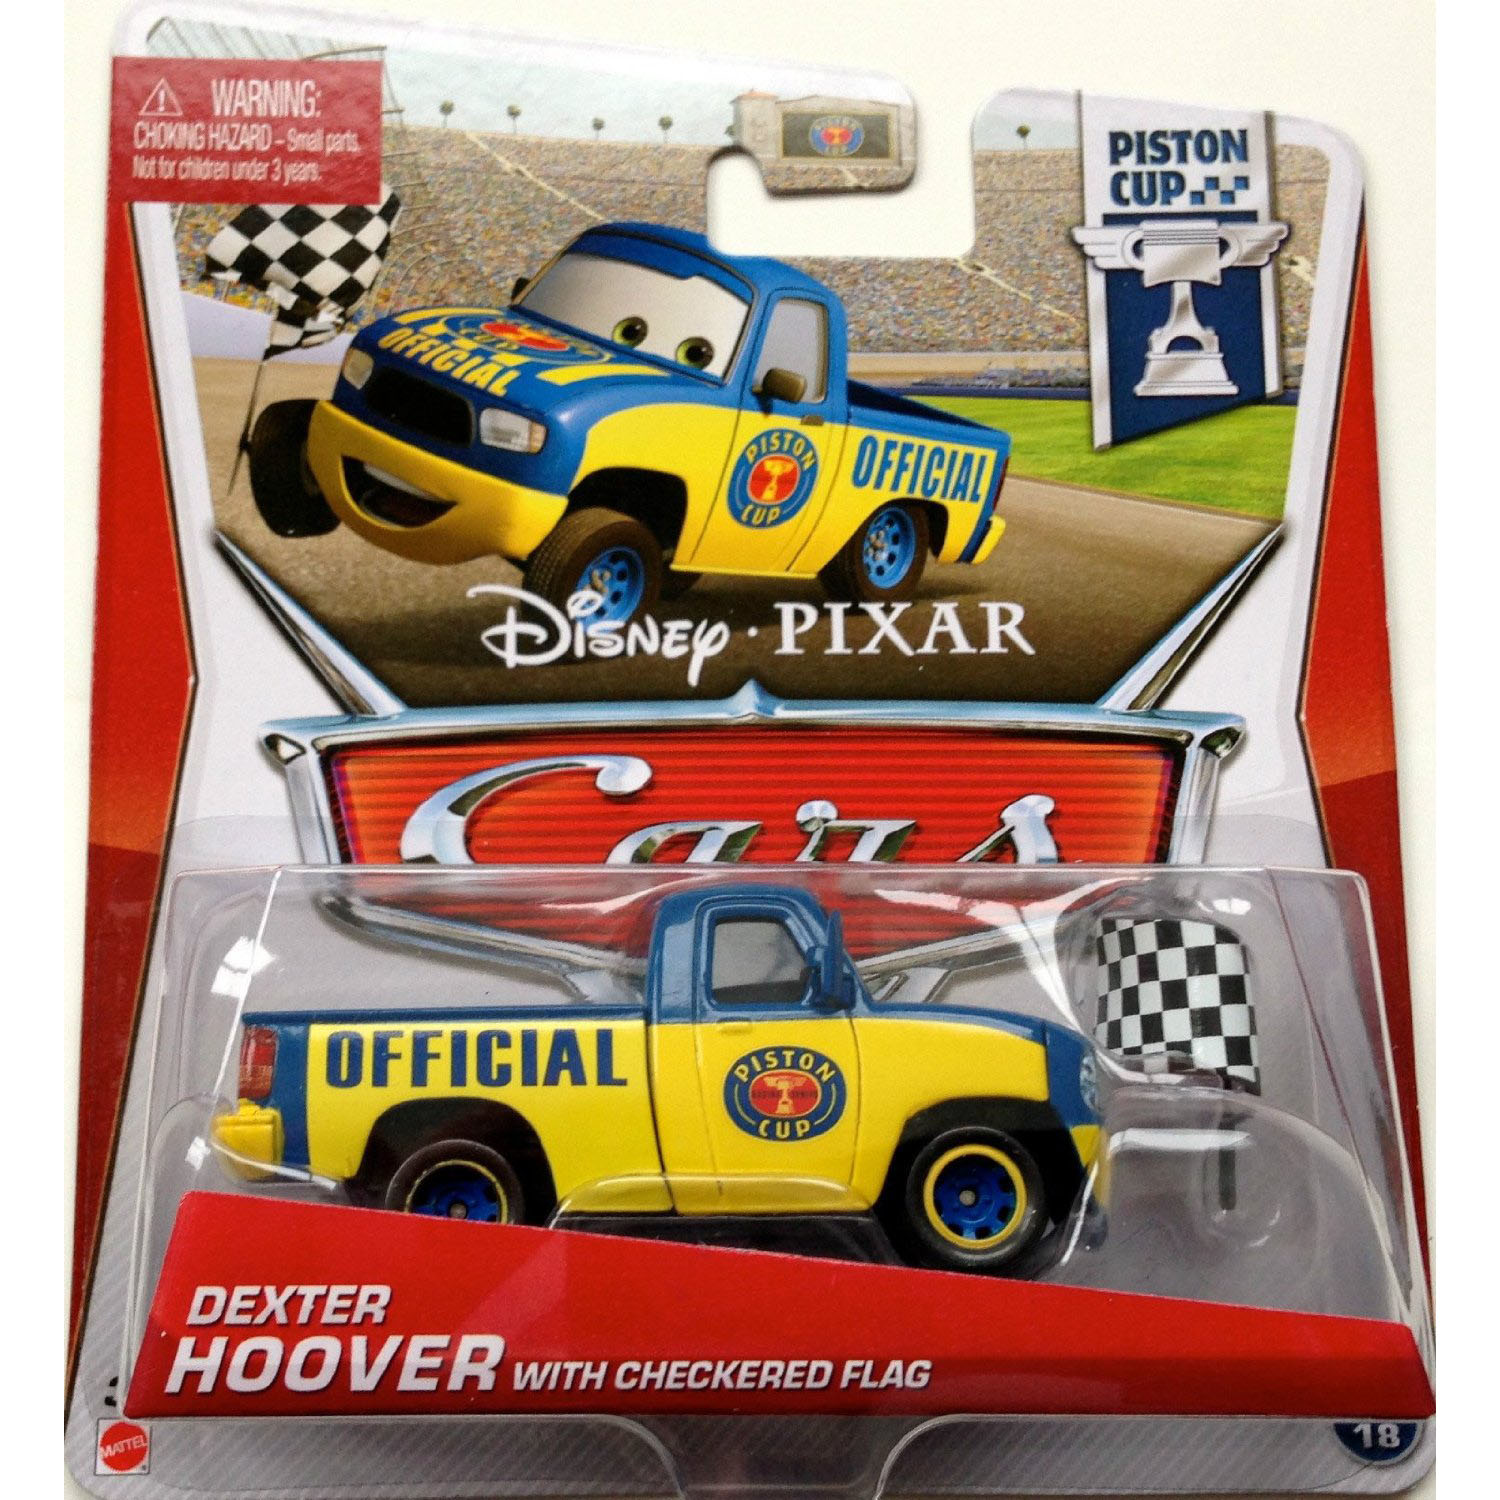 Thomas The Train Bedroom Decor Disney Cars Toys Die Cast Dexter Hoover With Checkered